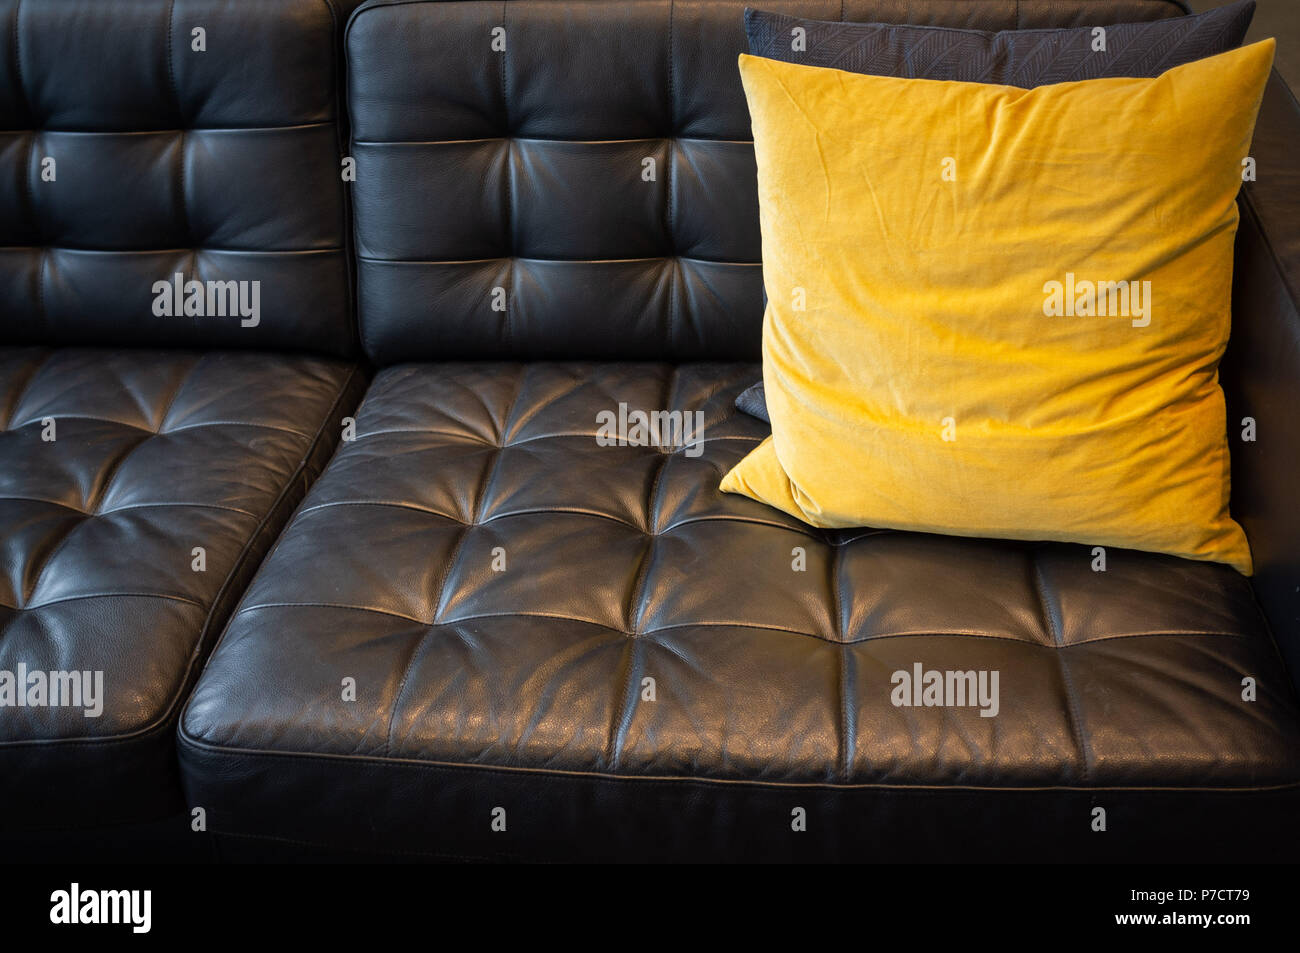 Yellow Pillow On Black Leather Couch Closeup Stock Photo Alamy